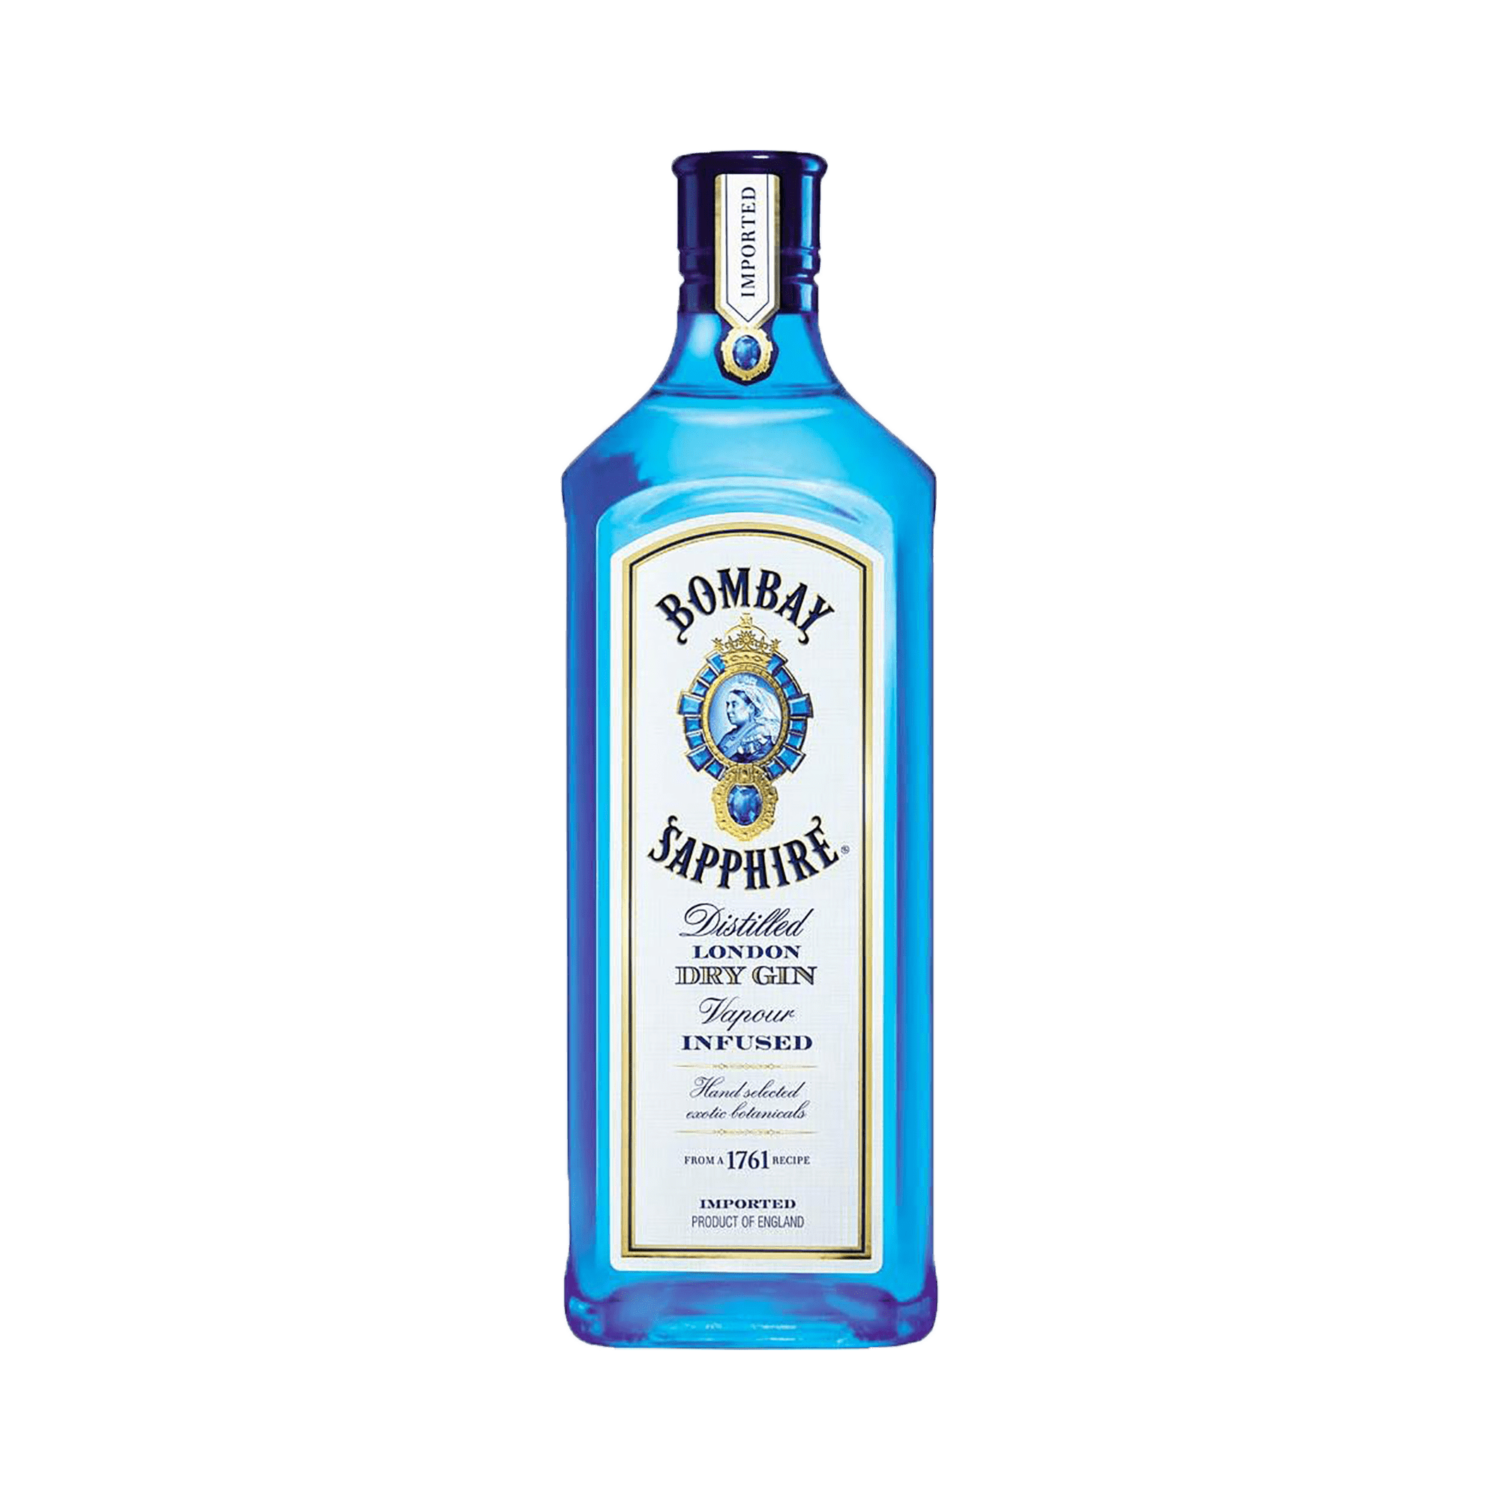 Star of Bombay London Dry Gin 0,7L